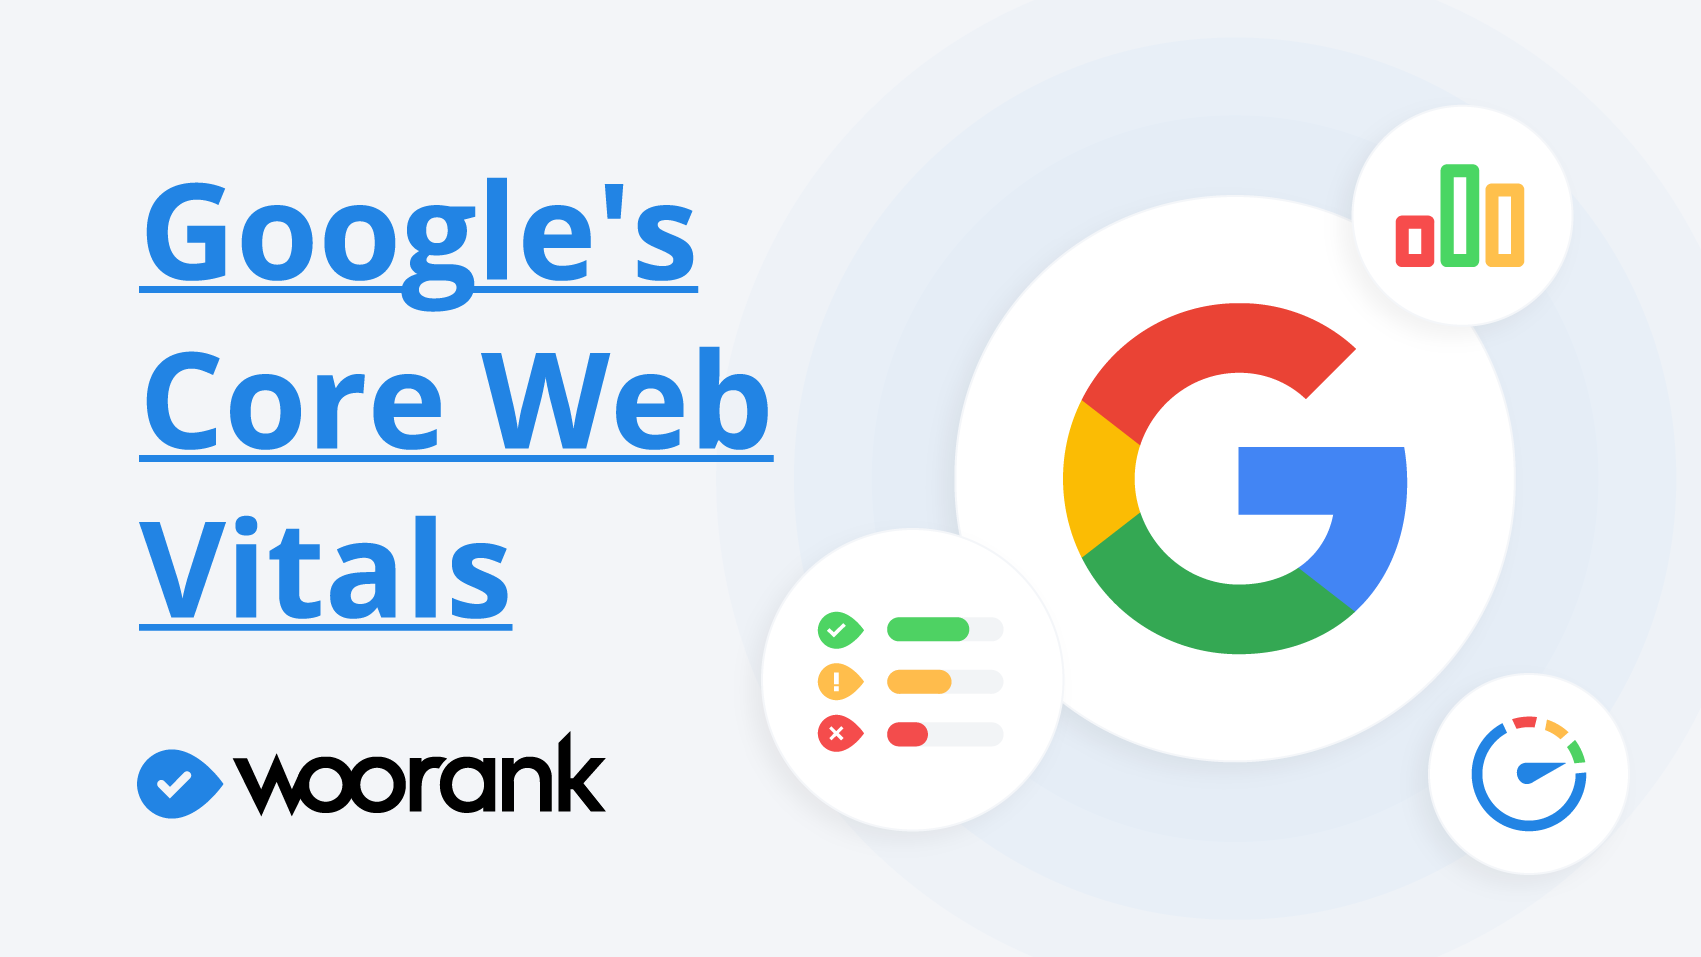 Google Core Web Vitals to become Ranking Signal in May 2021